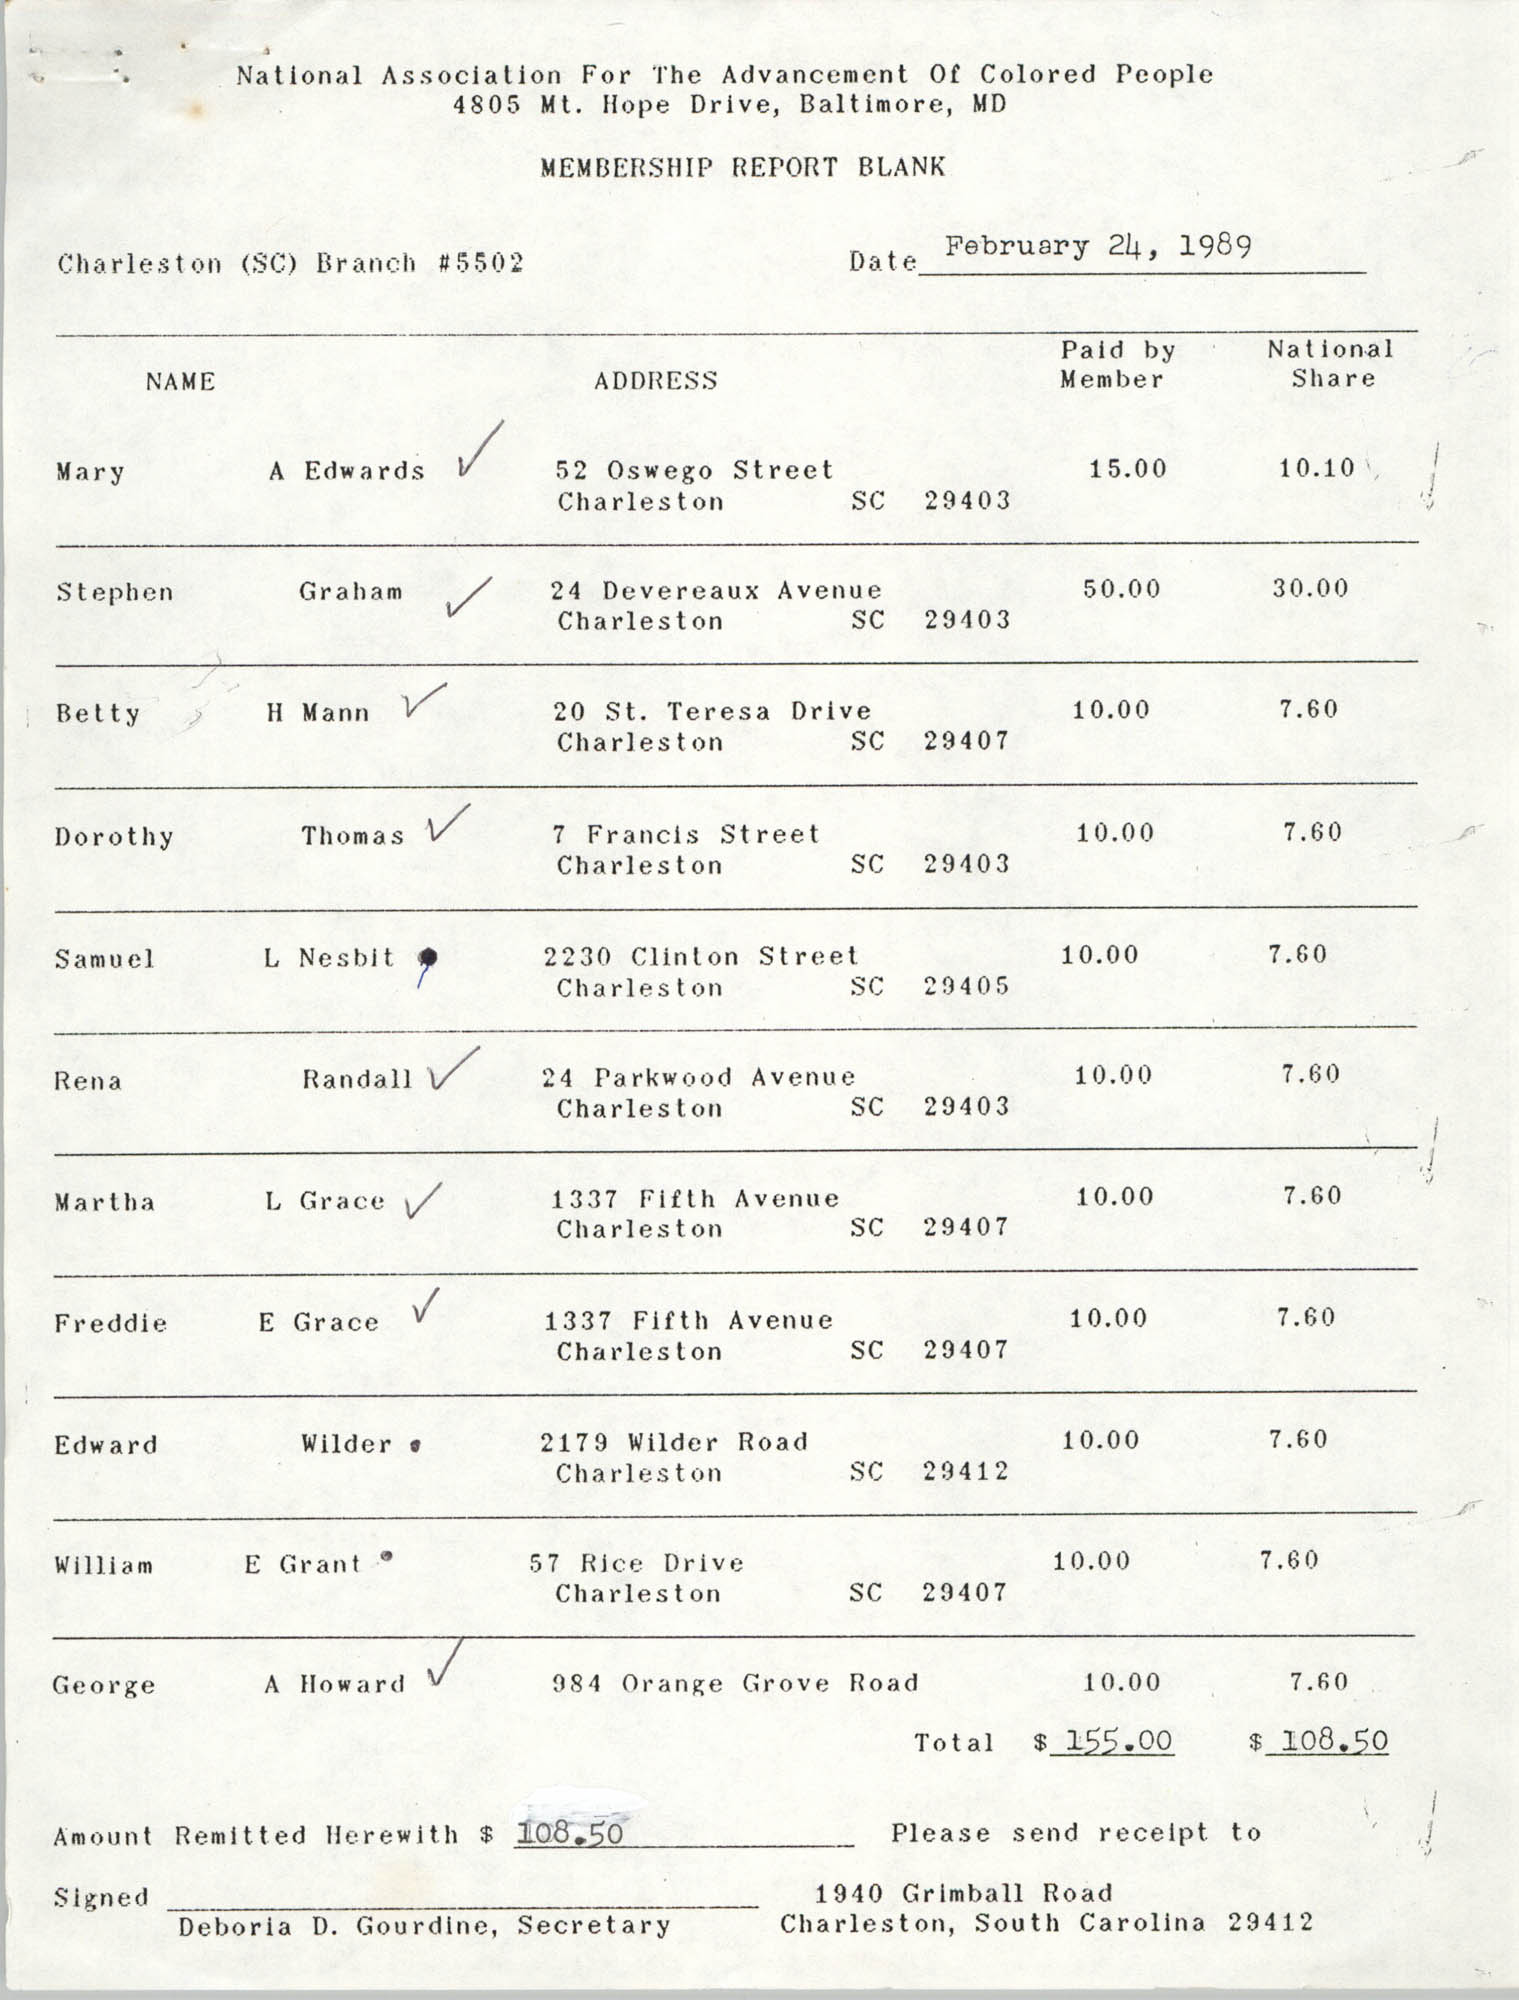 Membership Report Blank, Charleston Branch of the NAACP, Deboria D. Gourdine, February 24, 1989